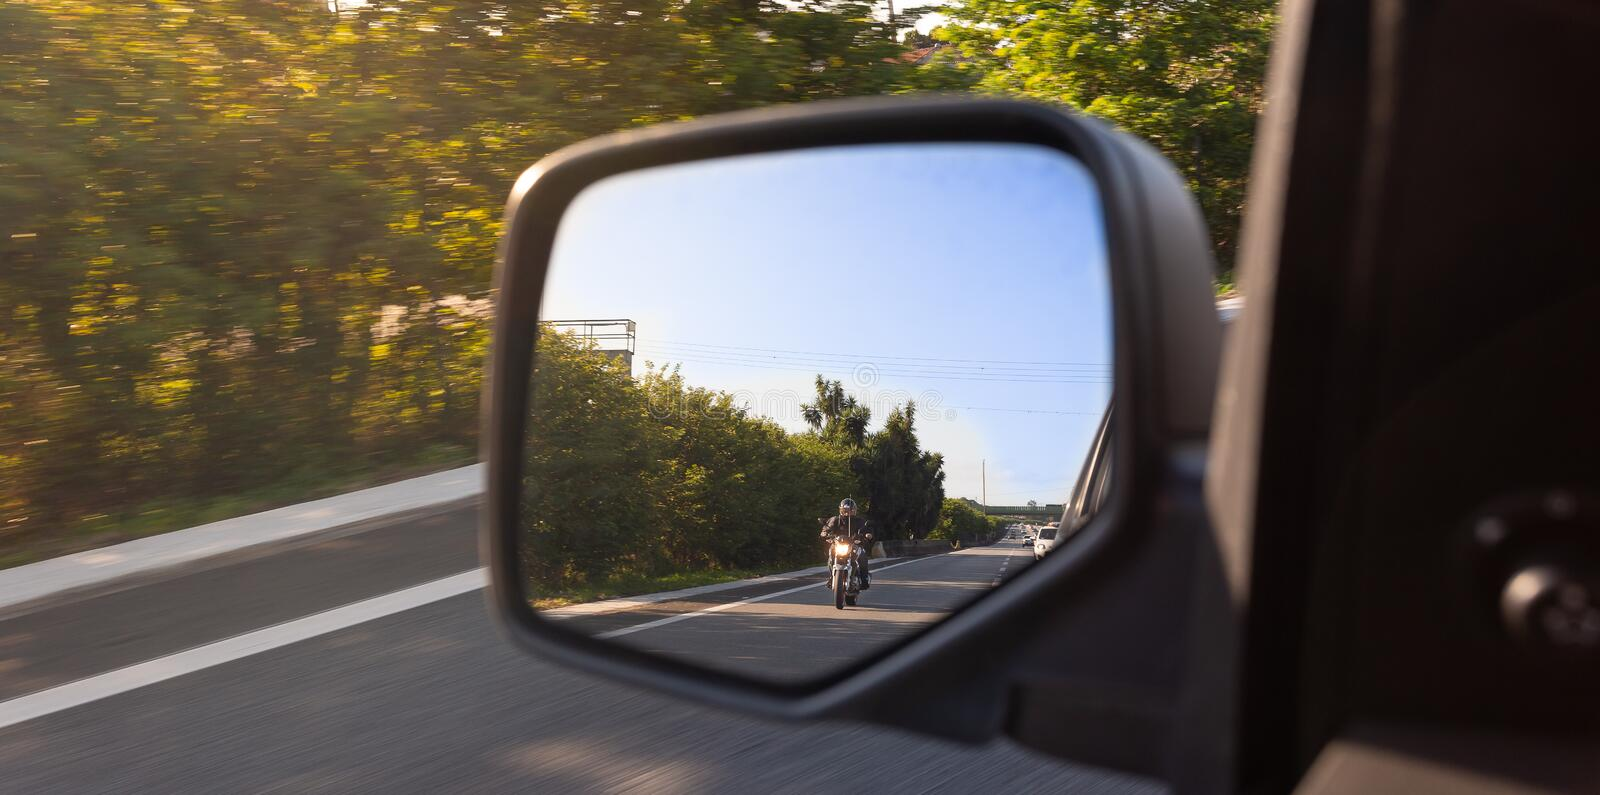 Car rear view mirror with the image of a biker approaching to overtake royalty free stock images